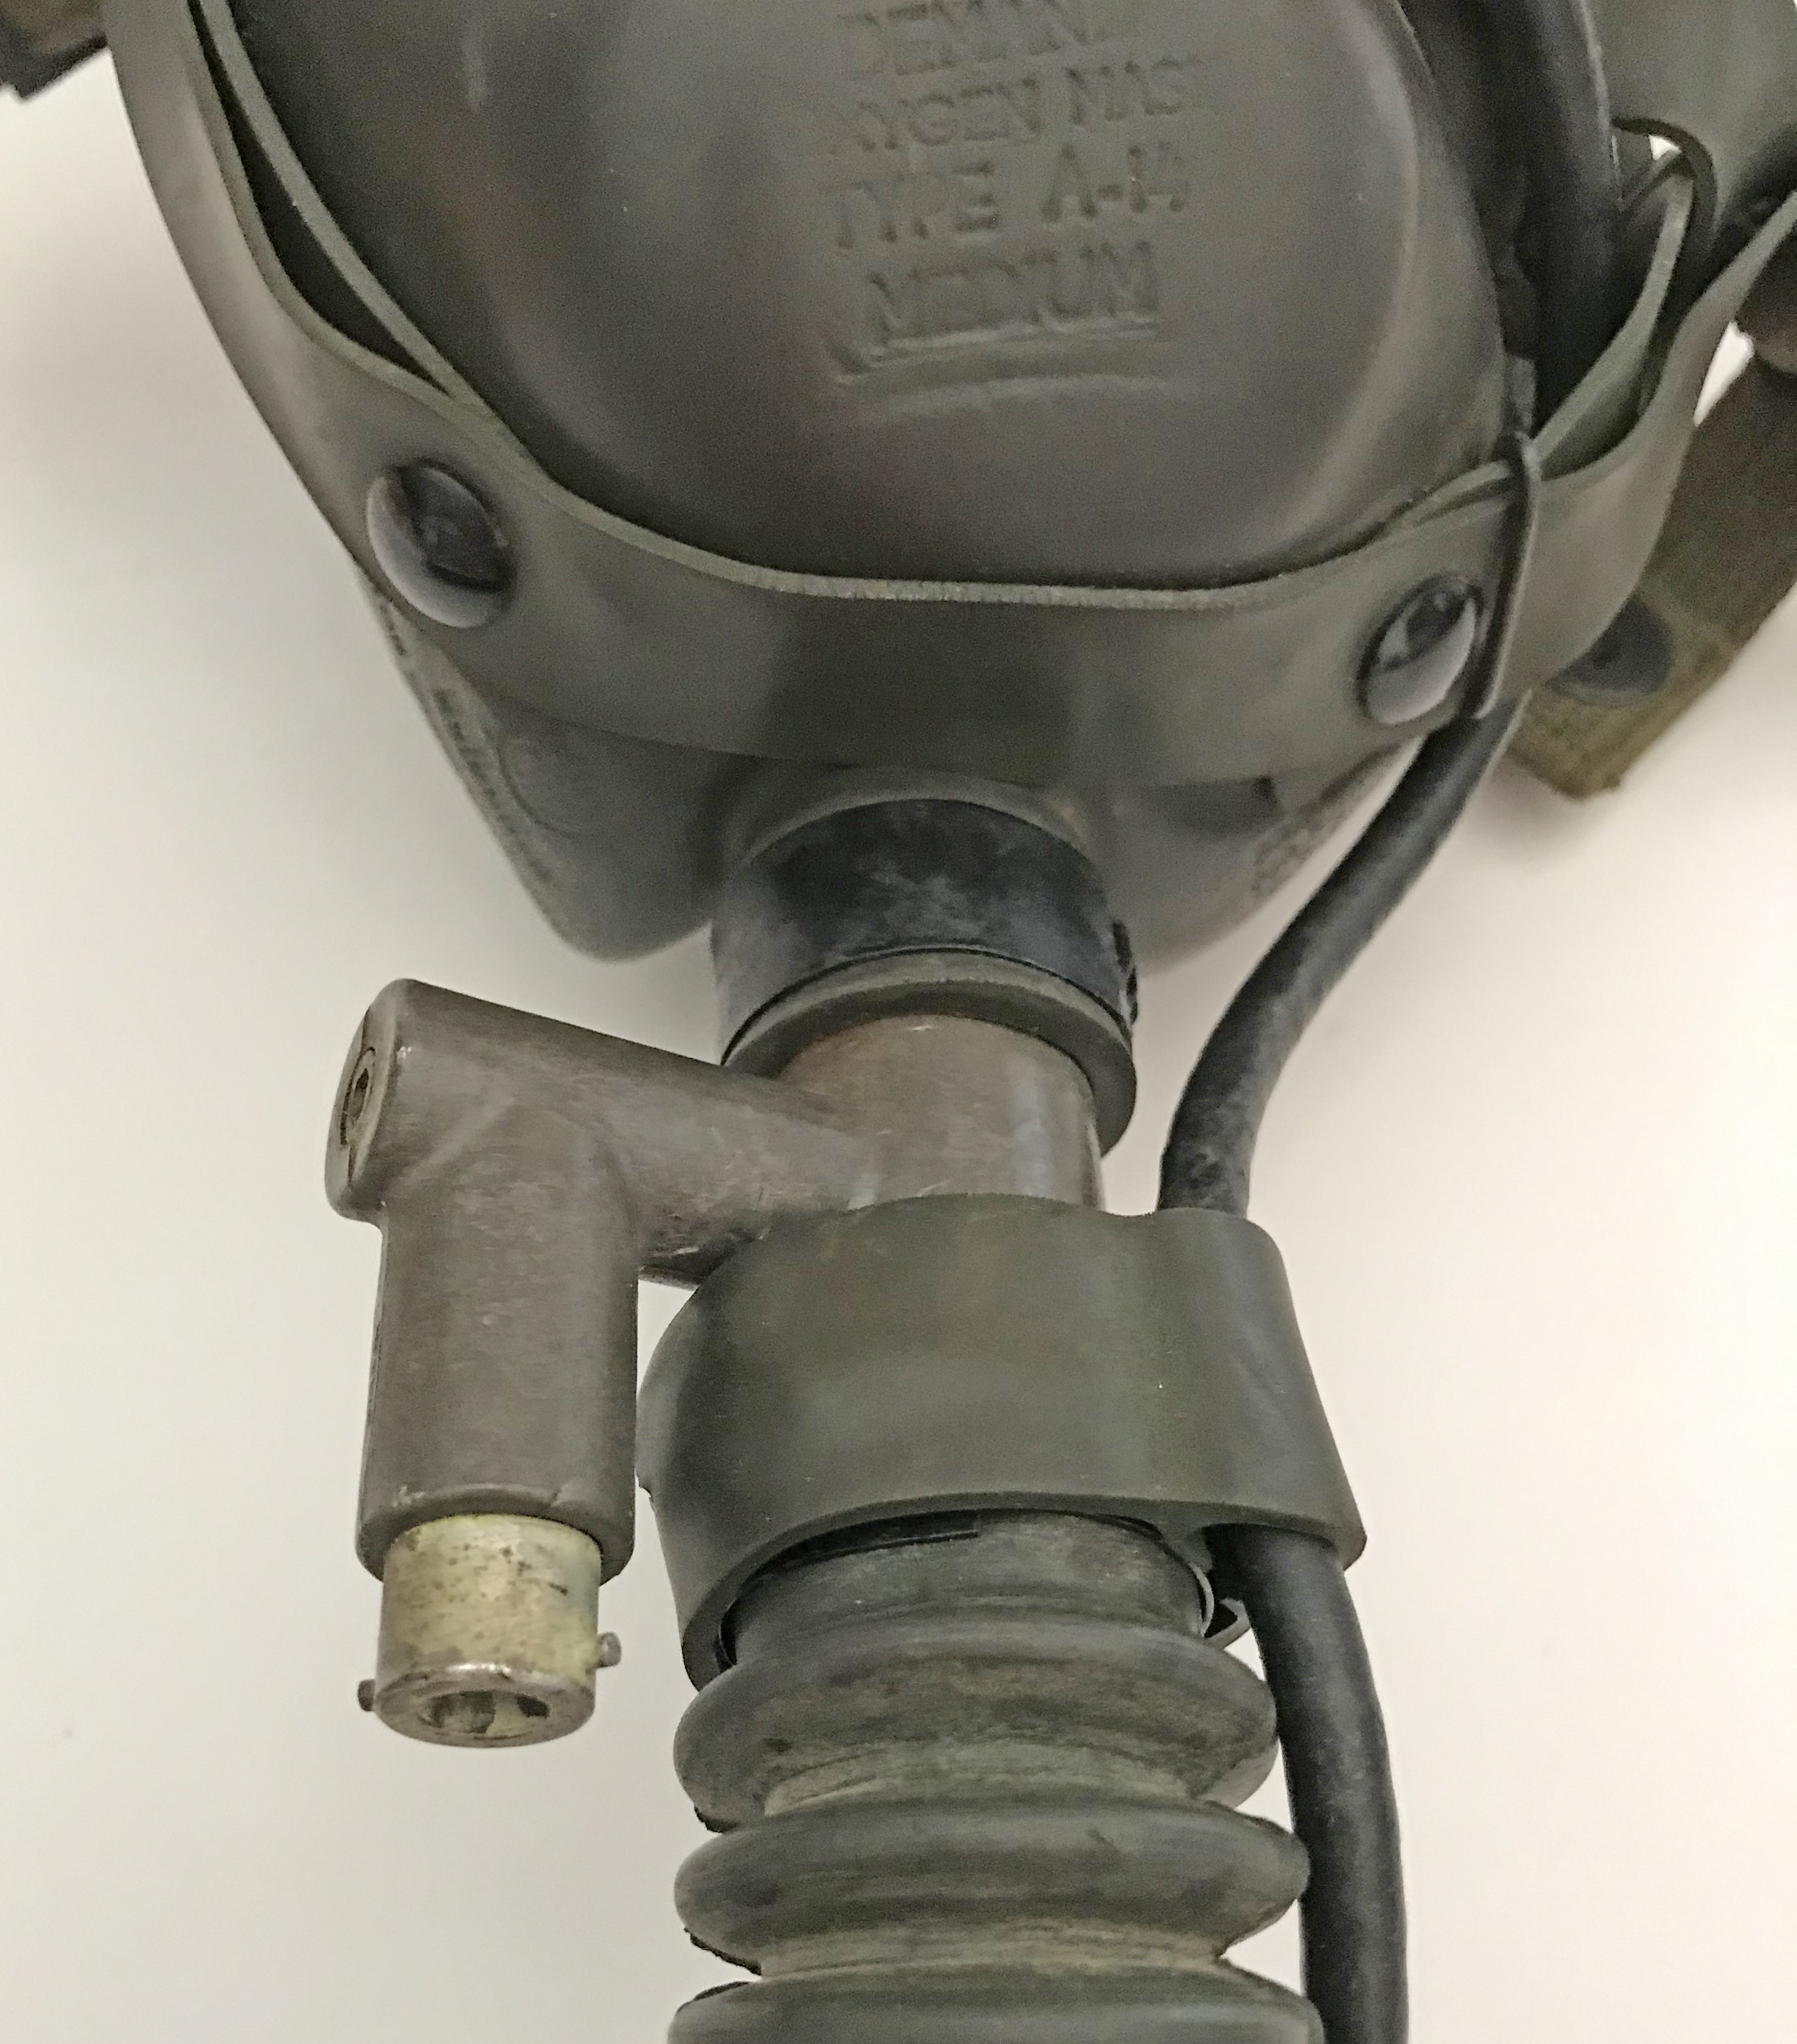 AAF A-14 mask with high-altitude bail-out tube